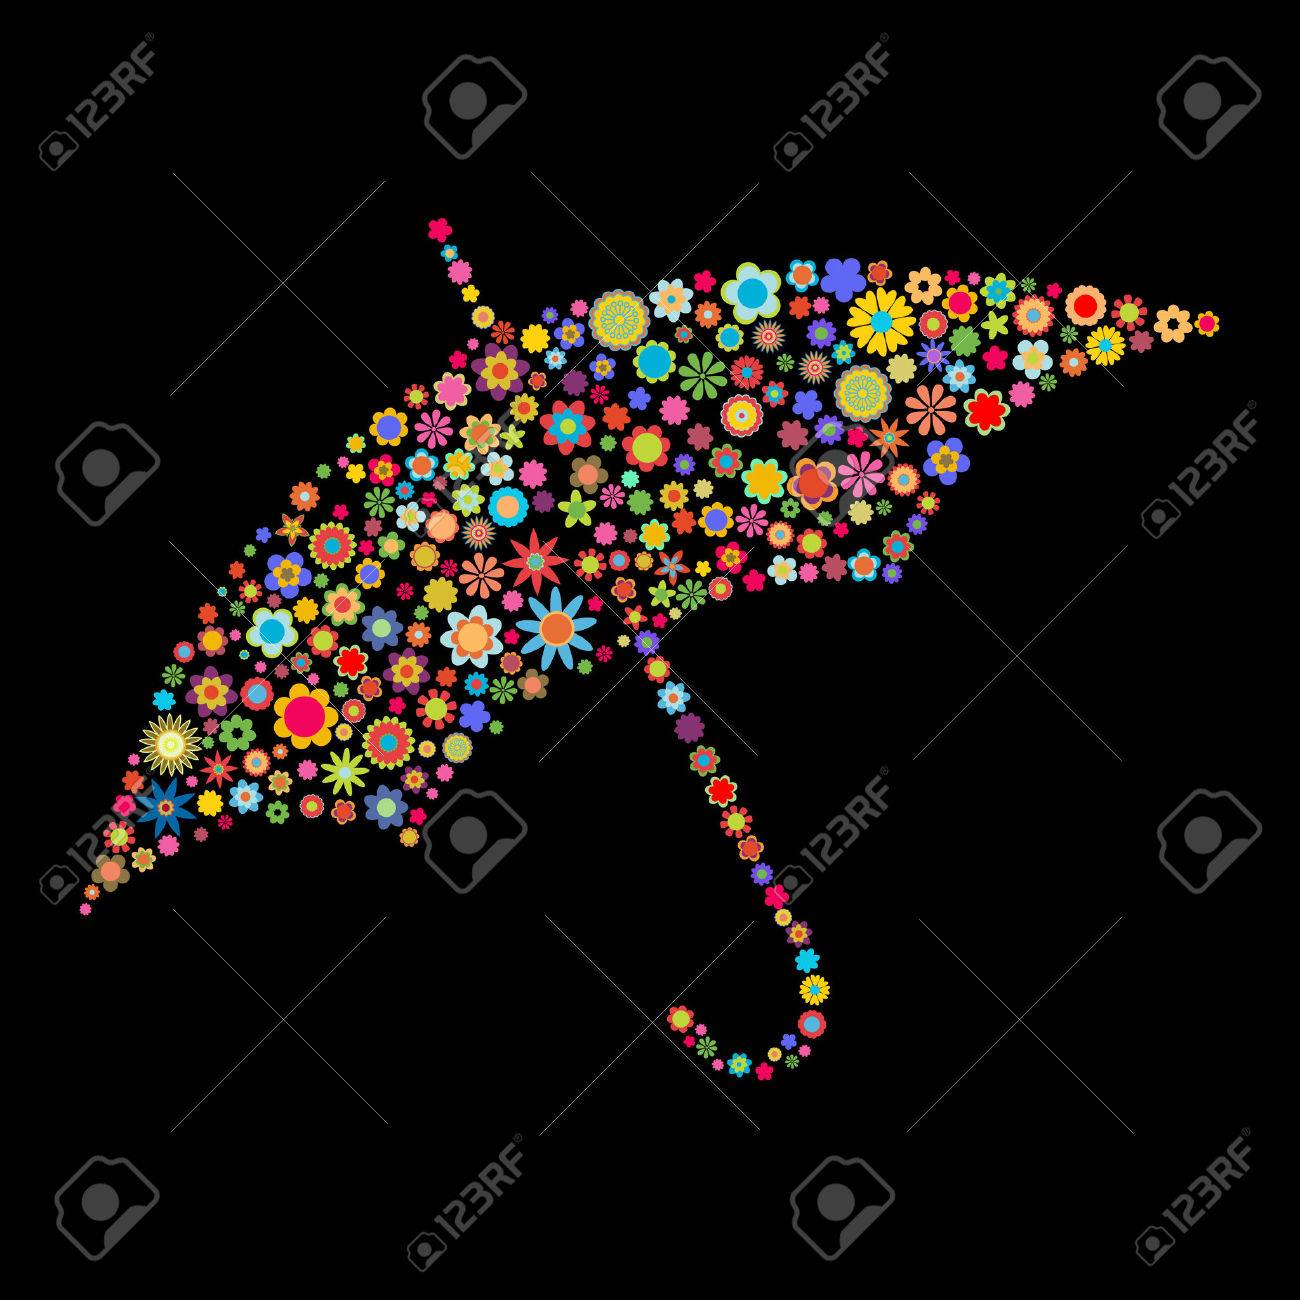 Vector illustration of umbrella shape  made up a lot of  multicolored small flowers on the black background Stock Vector - 4002784